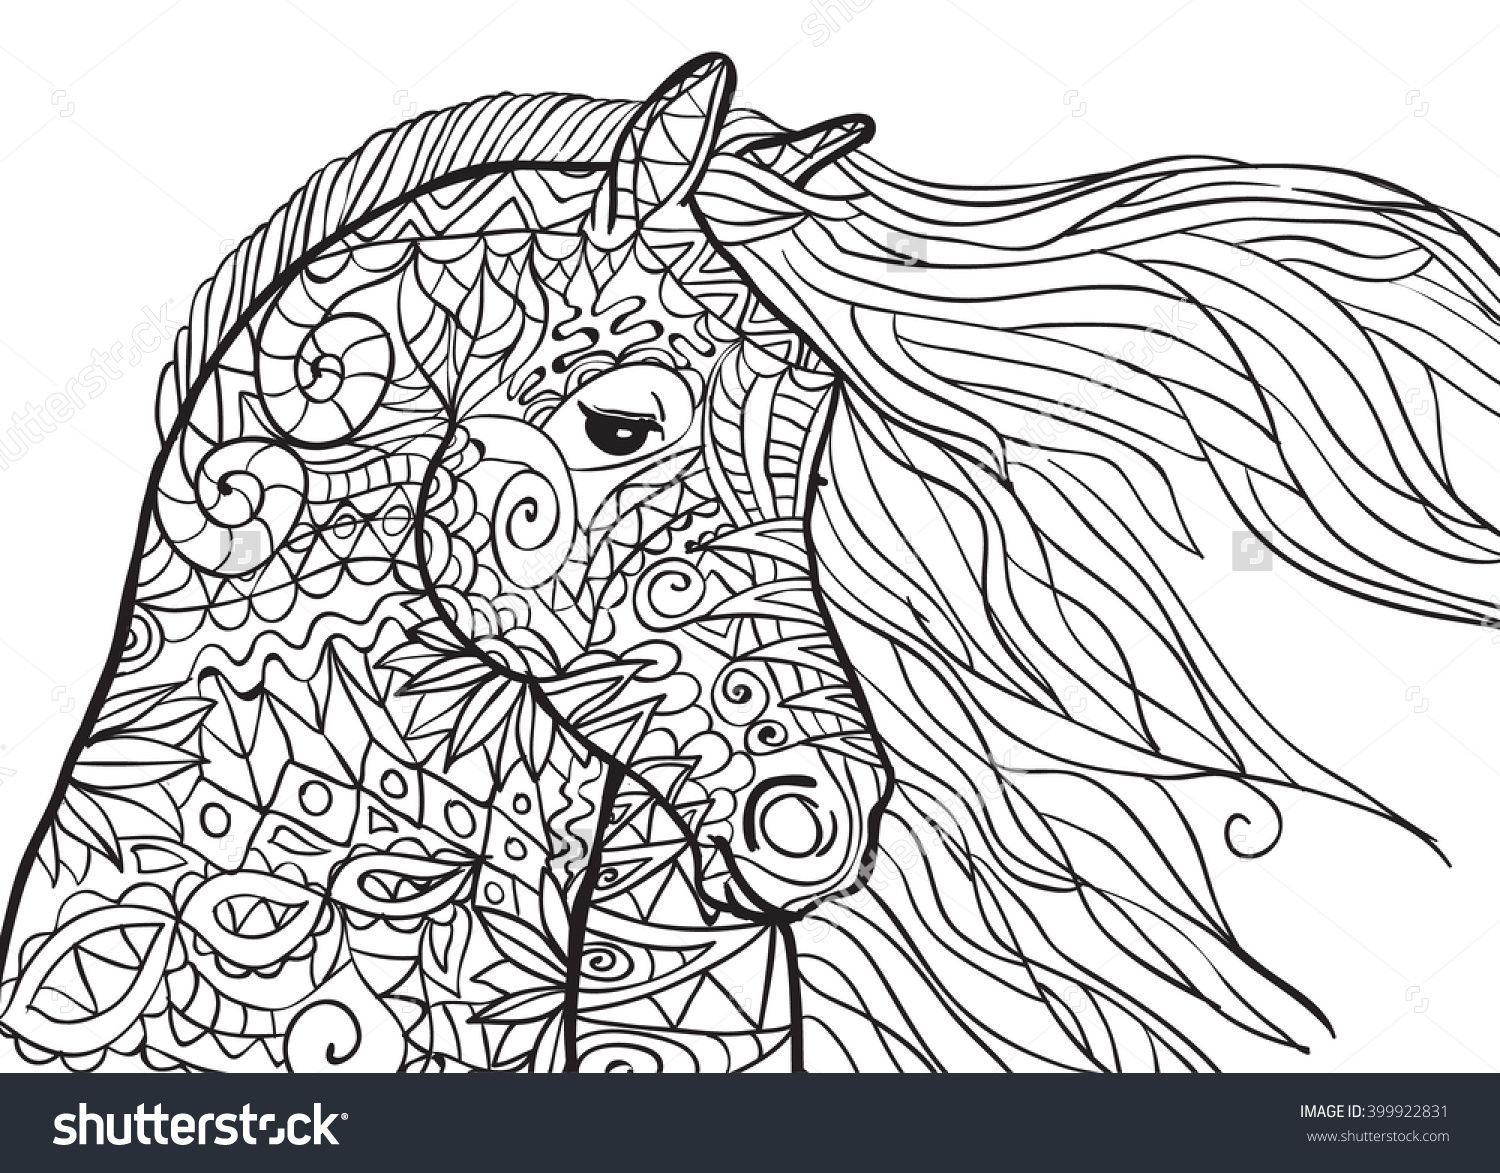 Hand Drawn Coloring Pages With Horseu0027s Head, Illustration For